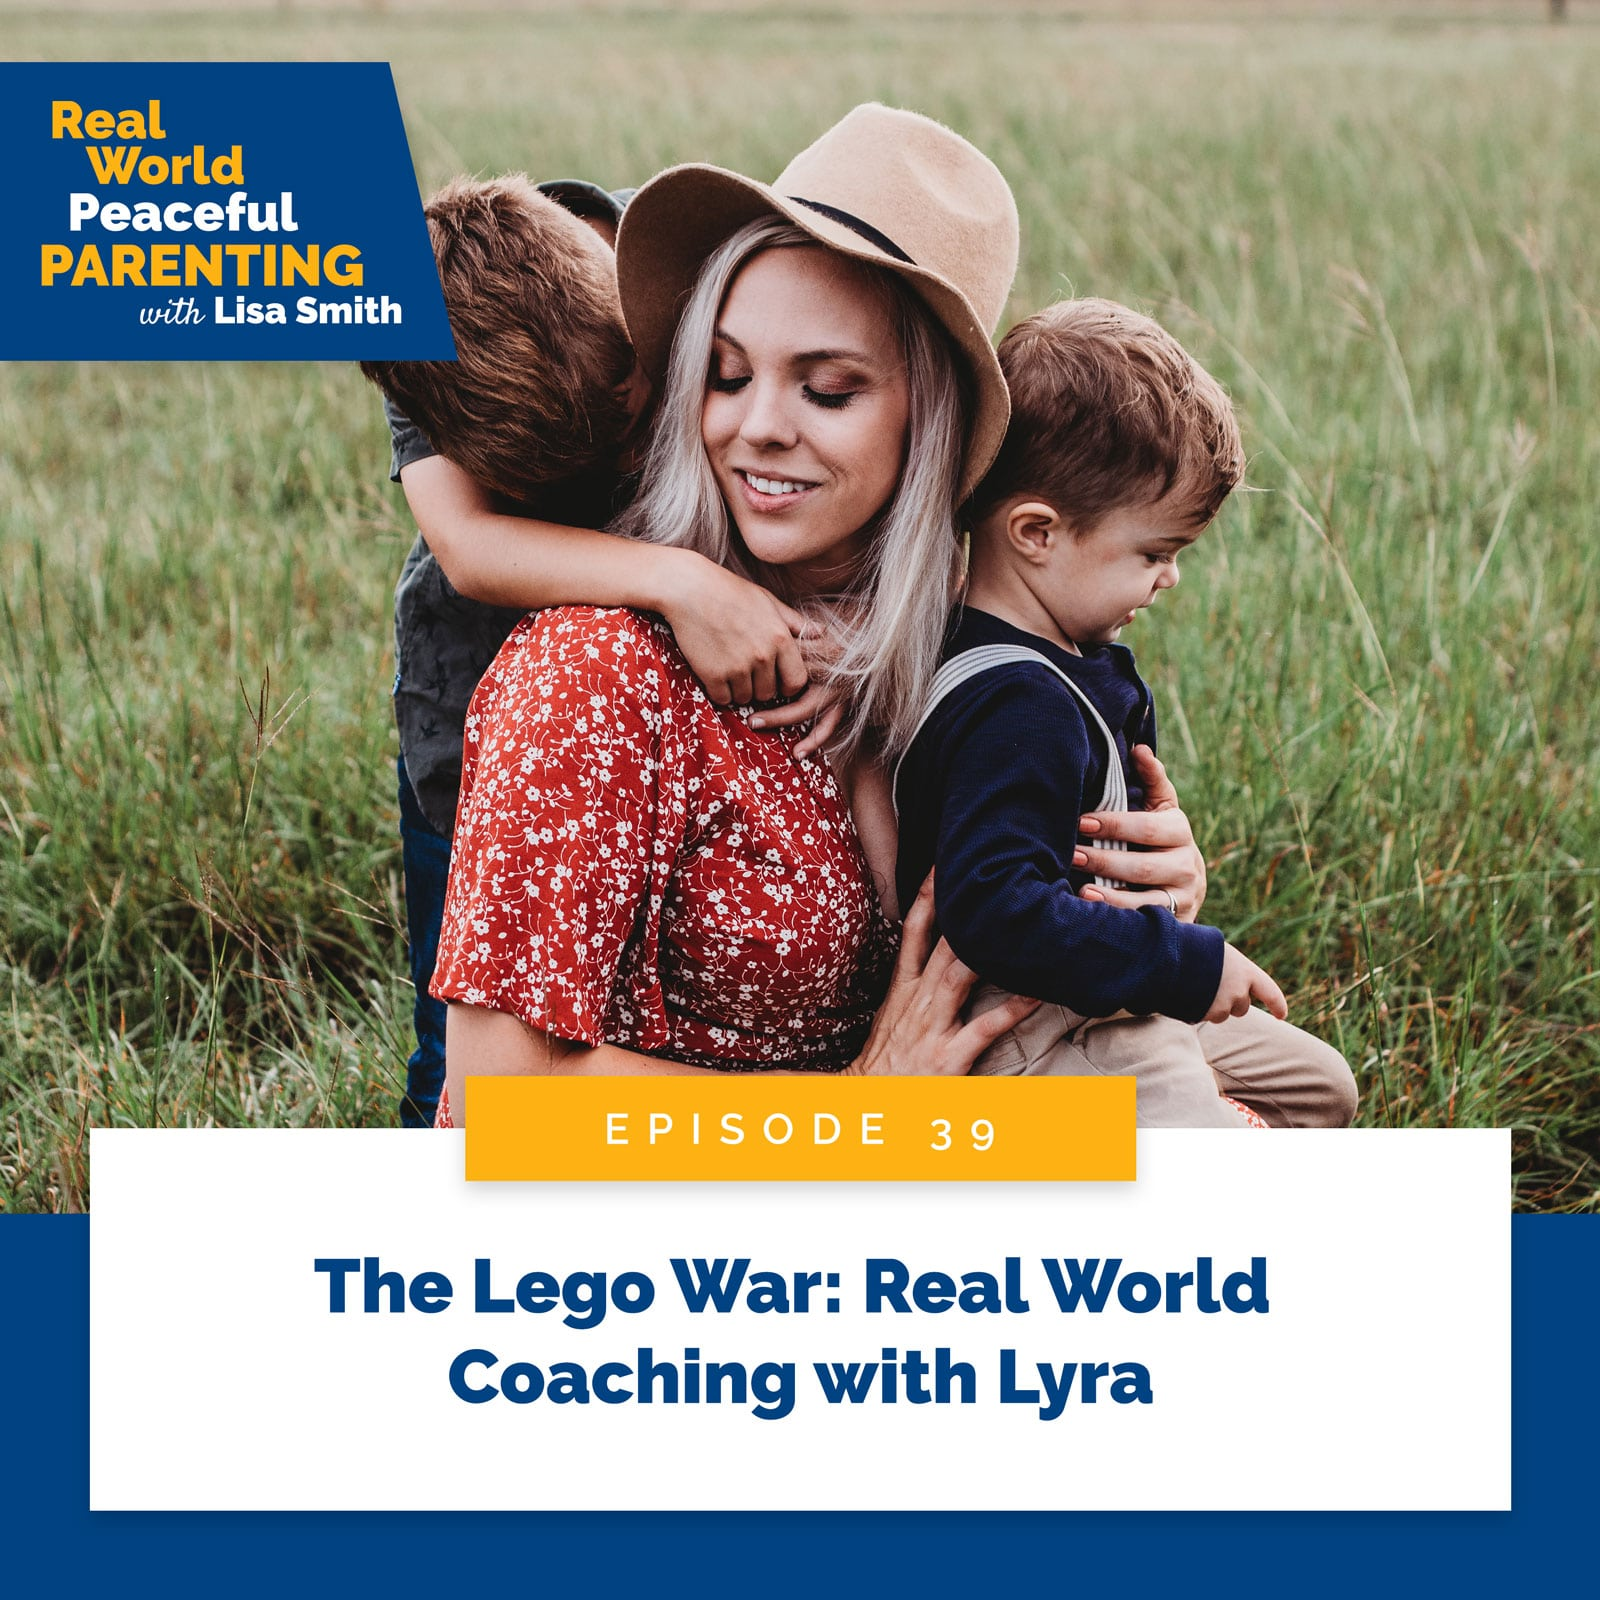 Real World Peaceful Parenting with Lisa Smith   The Lego War: Real World Coaching with Lyra